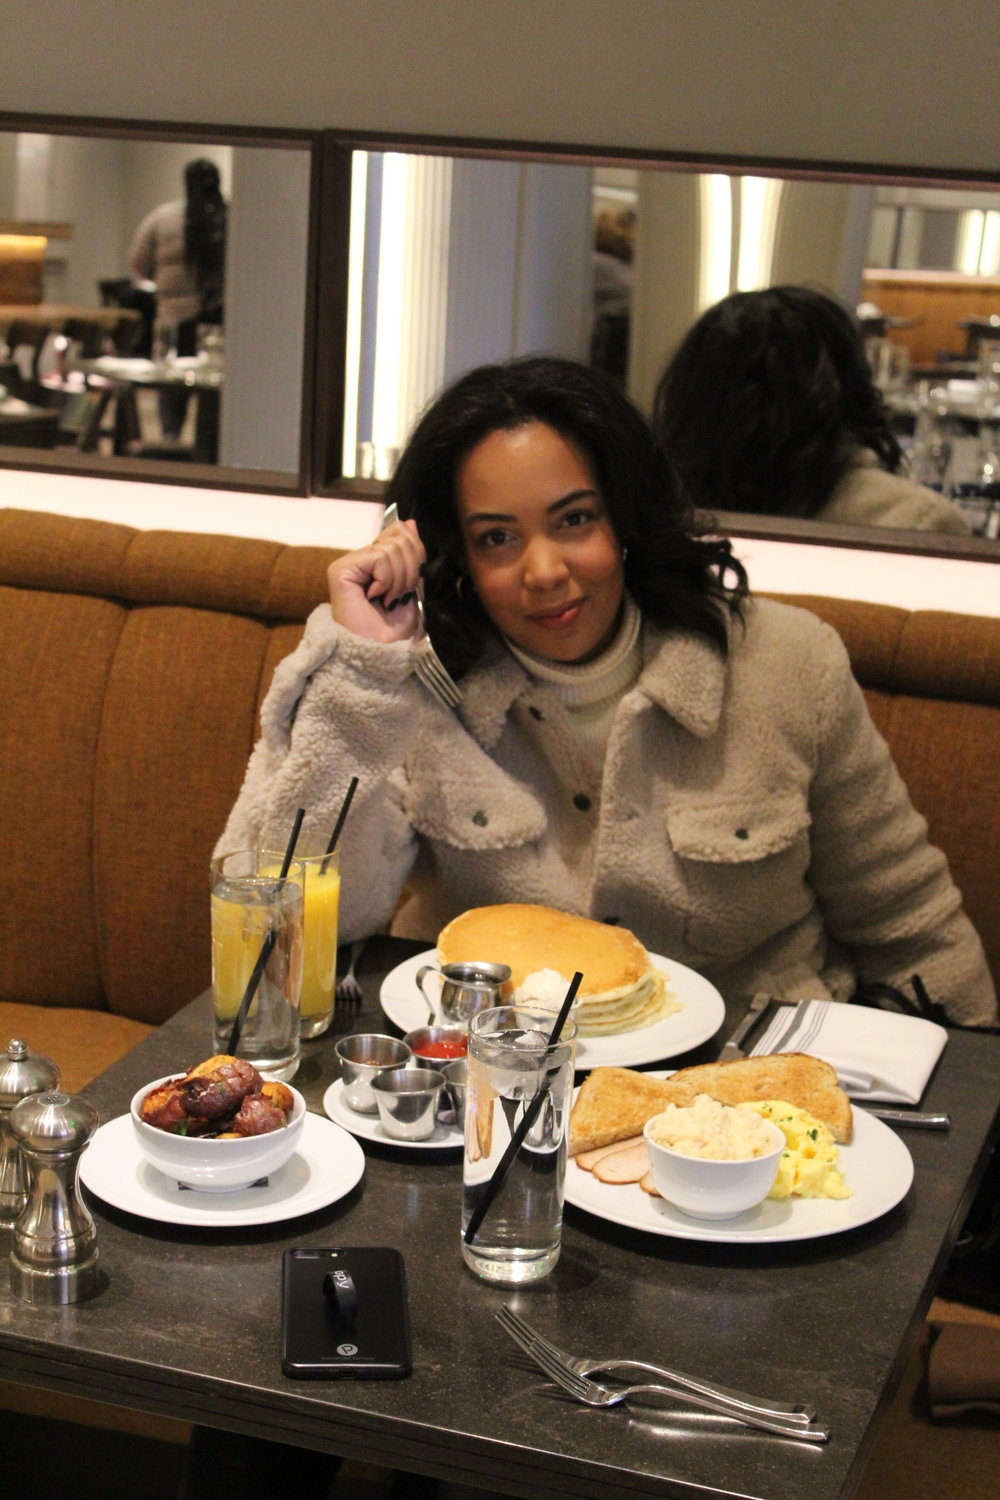 Robinson-Style-Top-brunch-in-NC-Raleigh-Durham-Charlotte-Greensboro-Winston-Salem-4.JPG